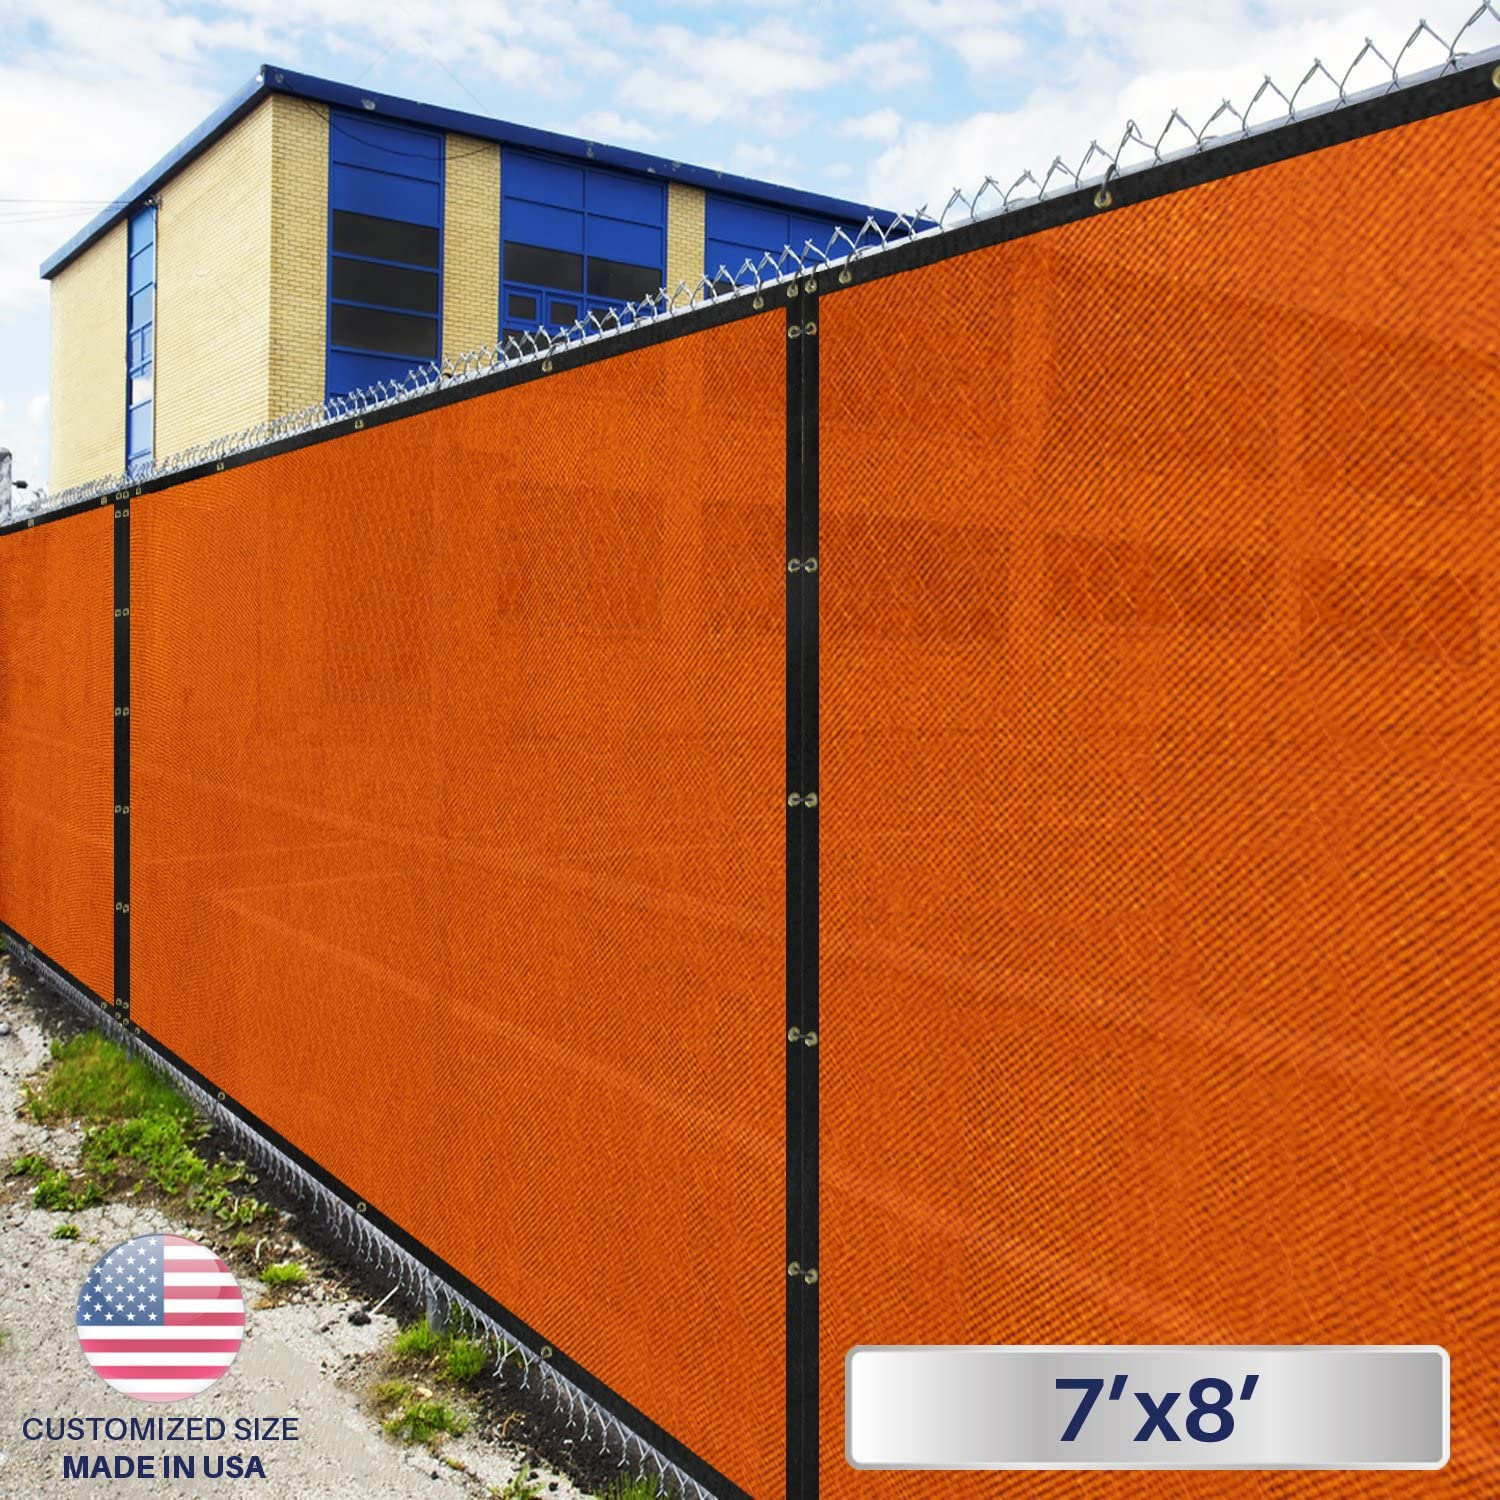 Windscreen4less Fence Privacy Screen 7 x 8 , Orange, Pergola Shade Cover Patio Canopy Sun Block,180 GSM, 95 Privacy Blockage, Mesh Fabric with Brass Gromment, Customized